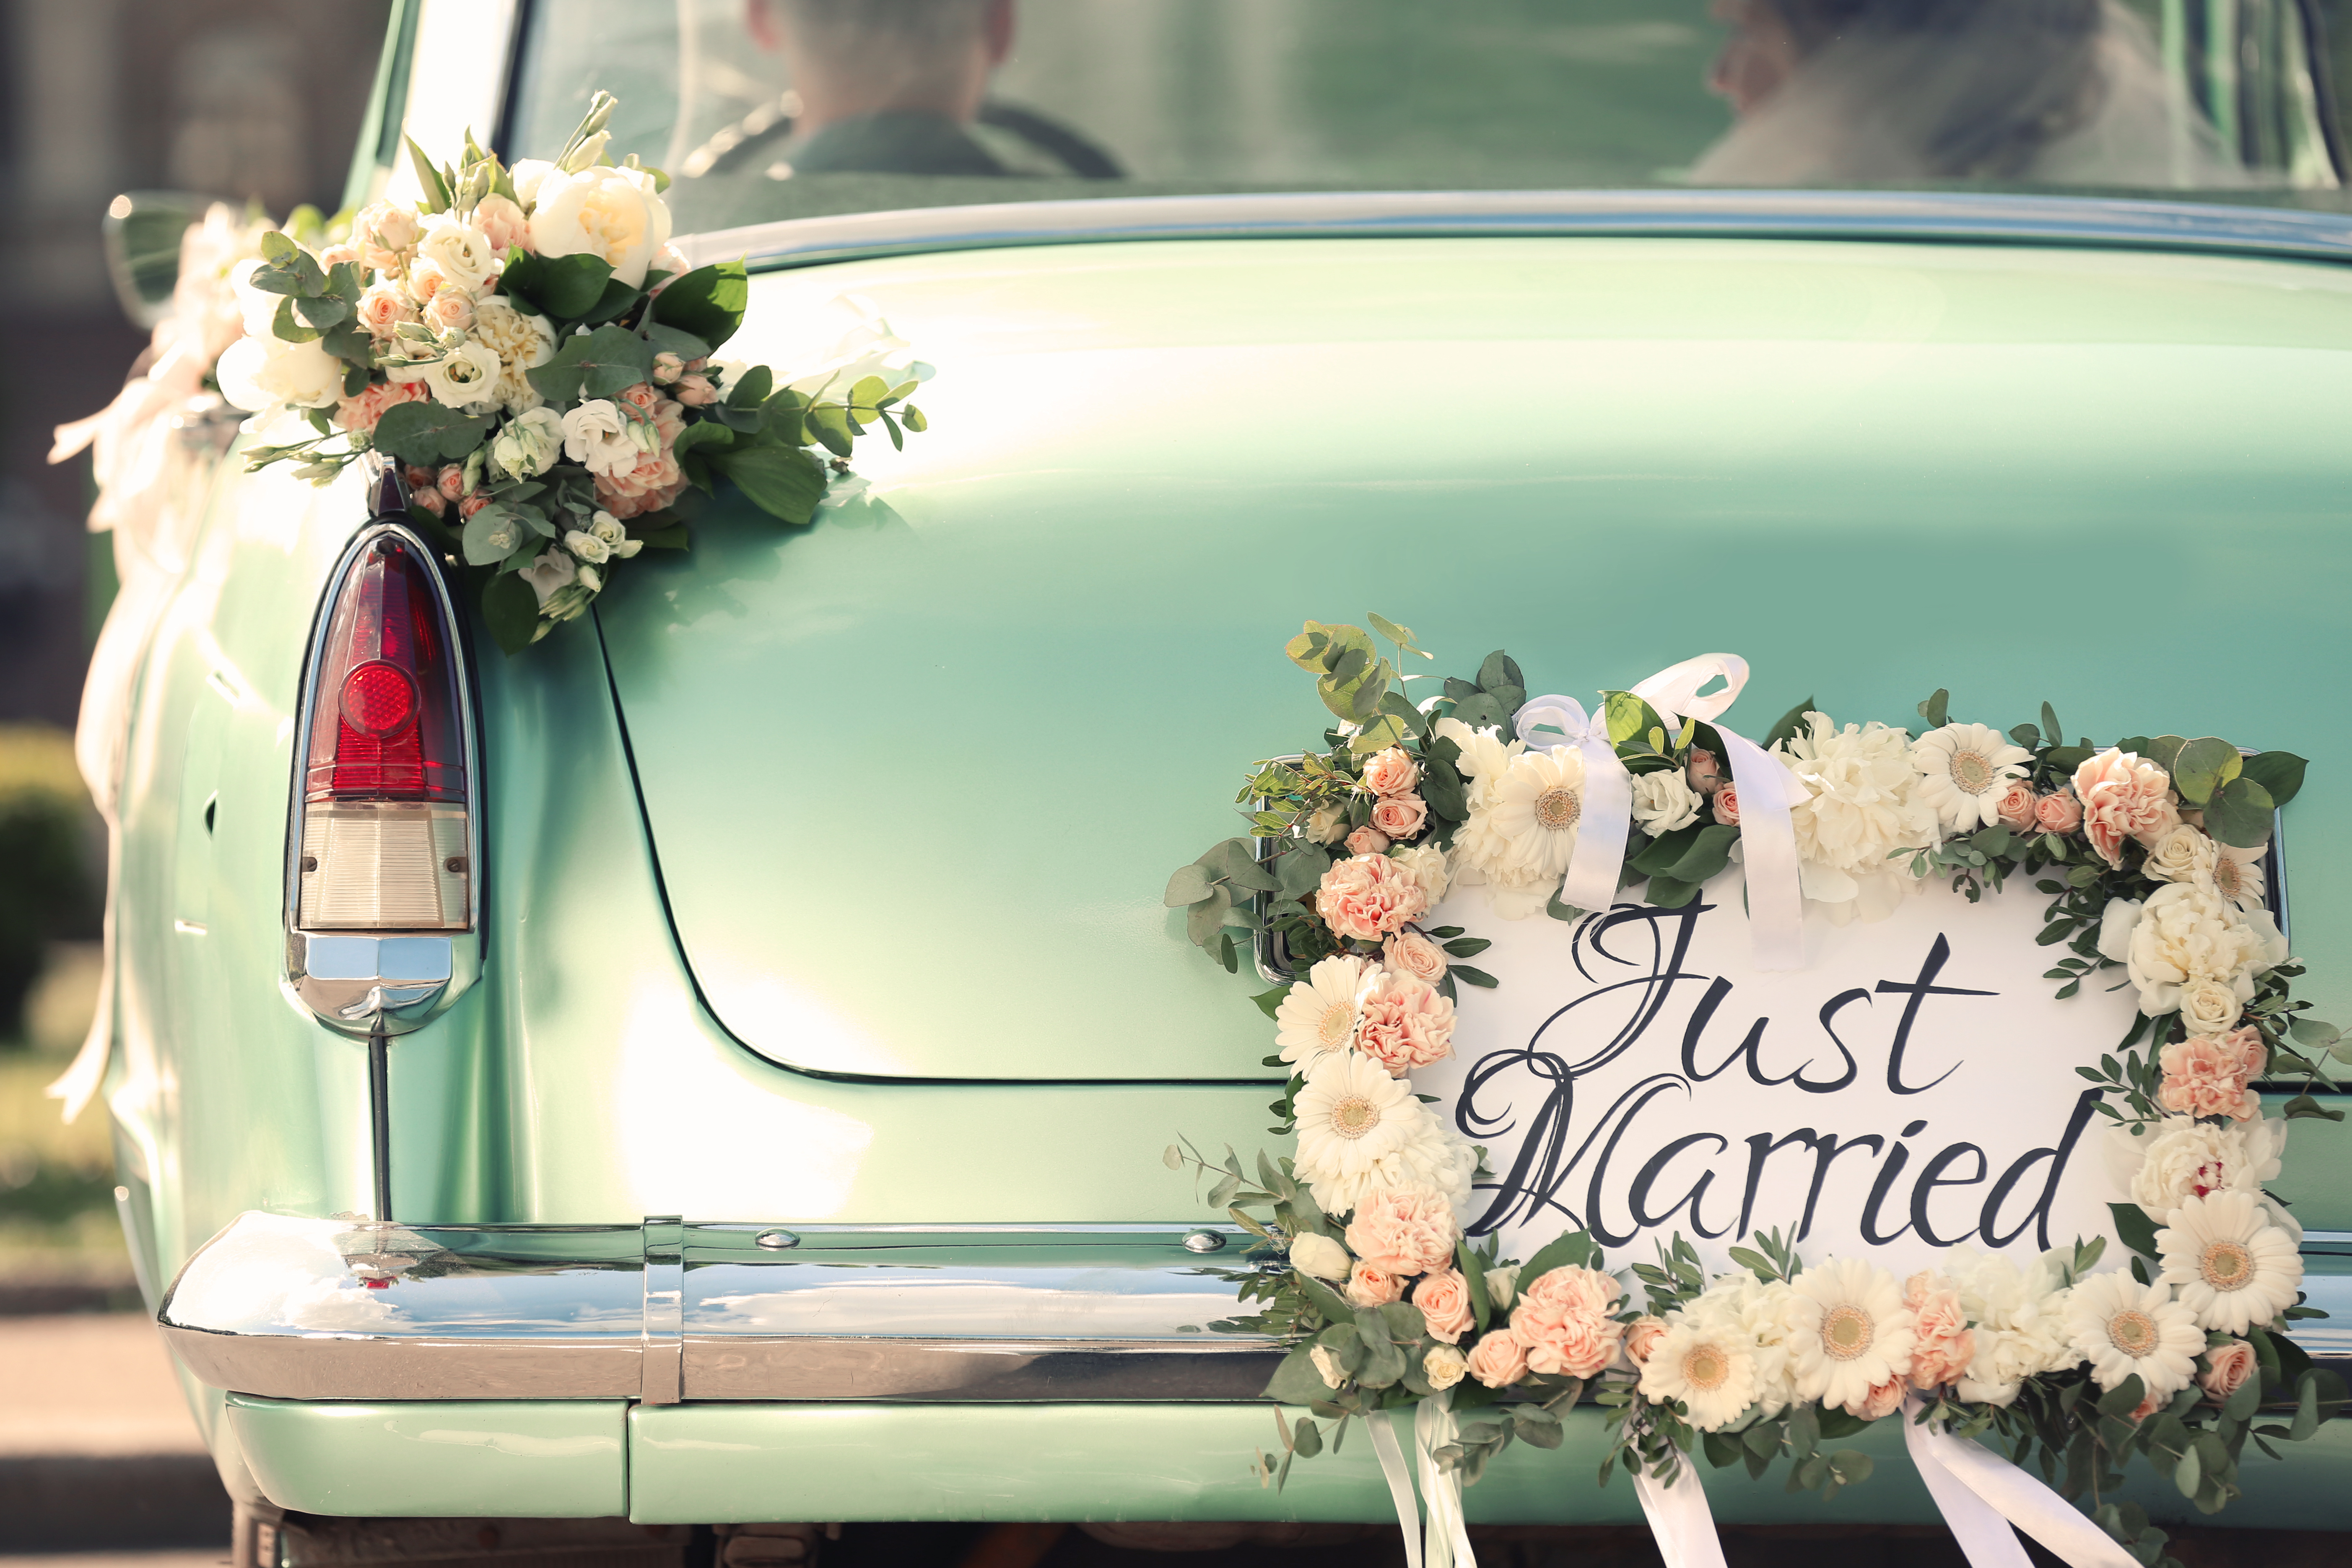 Making achoice between everyday essentials anda weekend wedding isn't uncommon for millennials, as 41 percent have considered skipping a friend's big day because they couldn't afford the expenses.